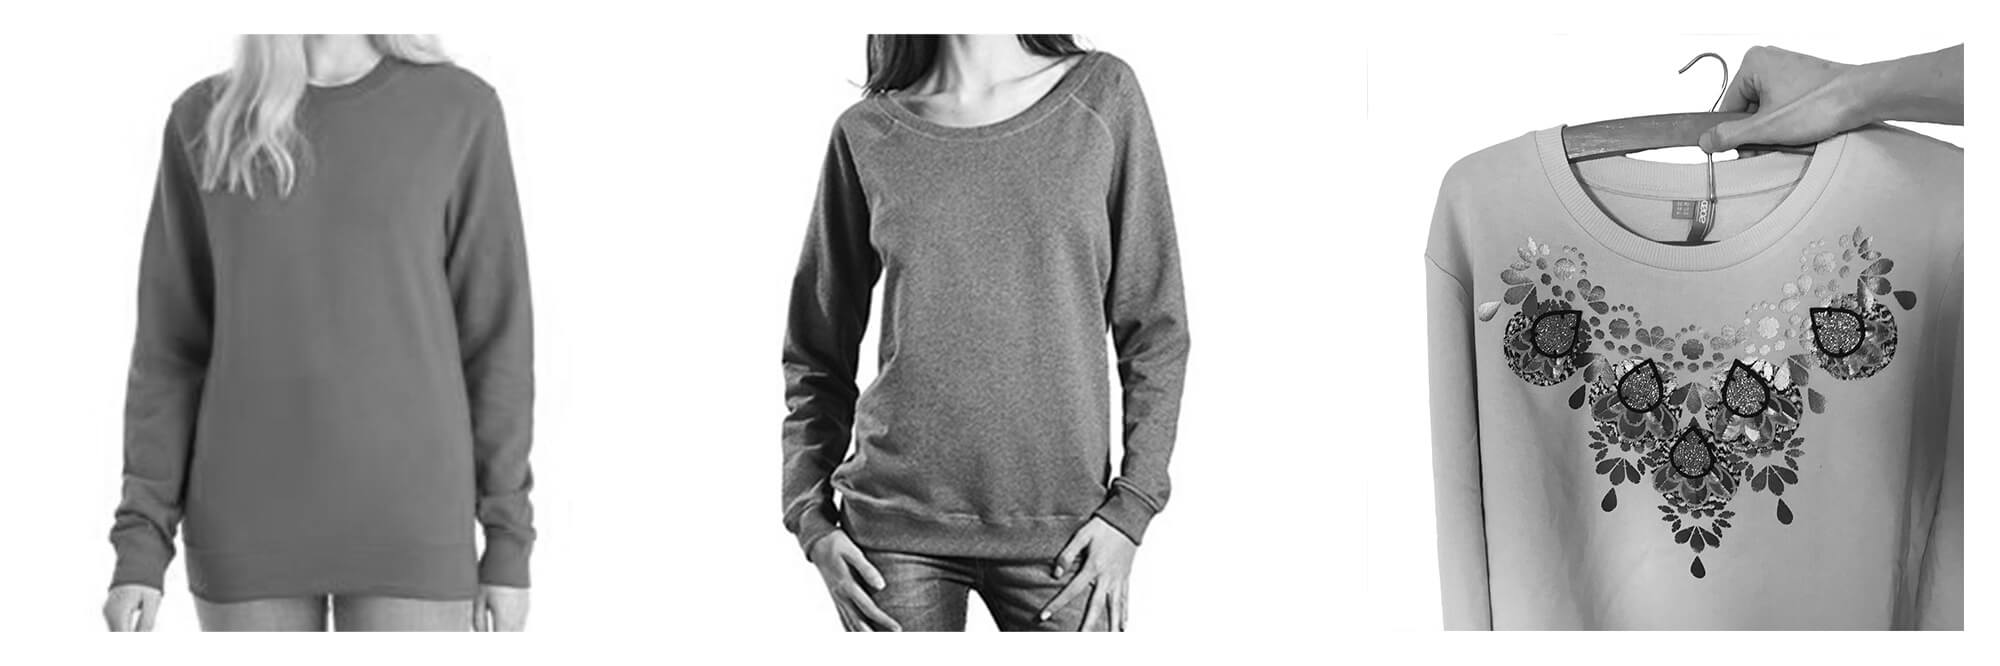 Three styles of sweatshirt show in black and white photographs